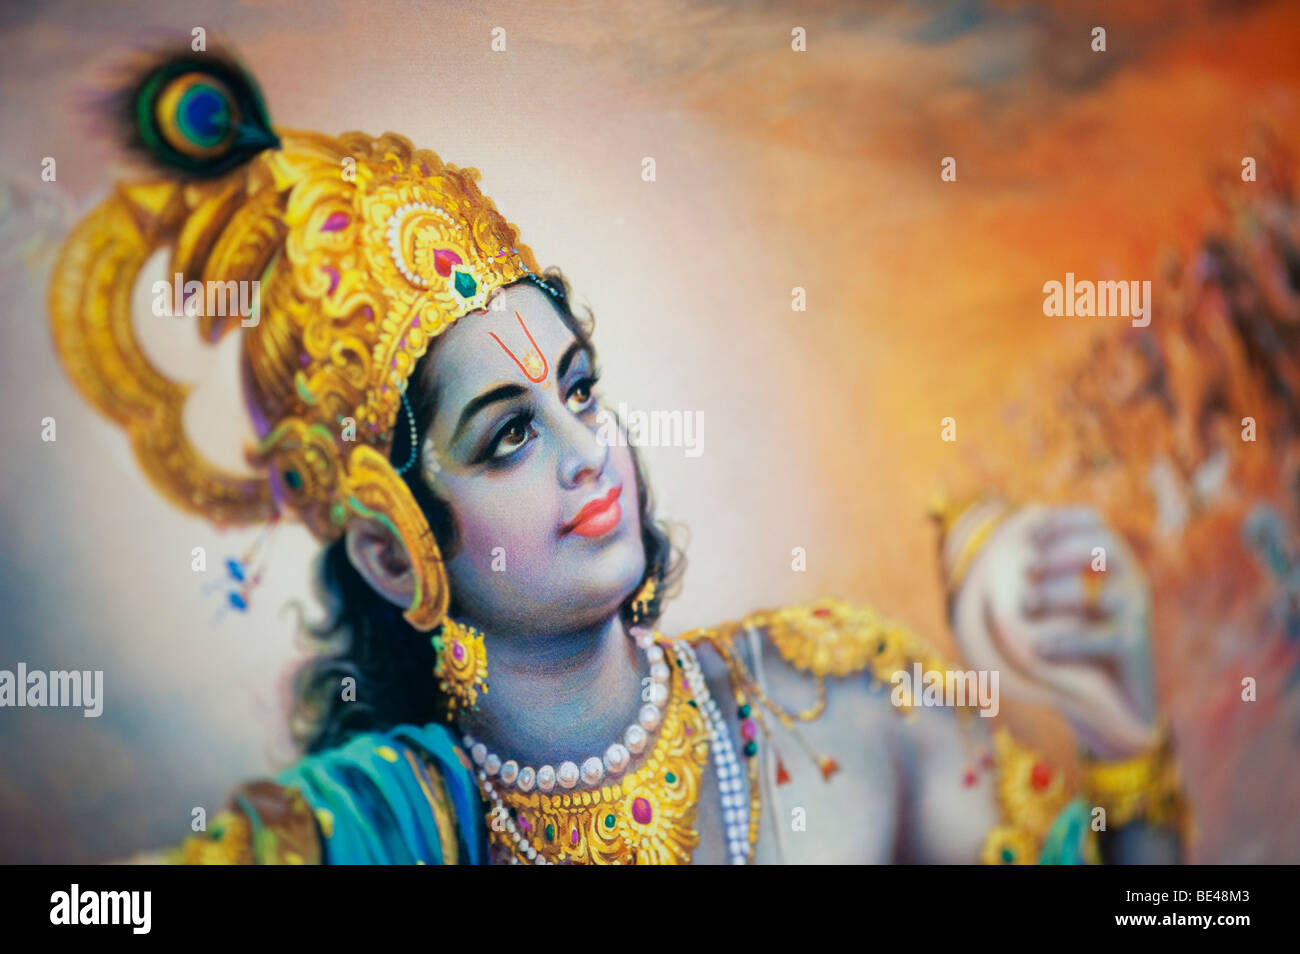 Lord Krishna depicted on an indian poster. India - Stock Image